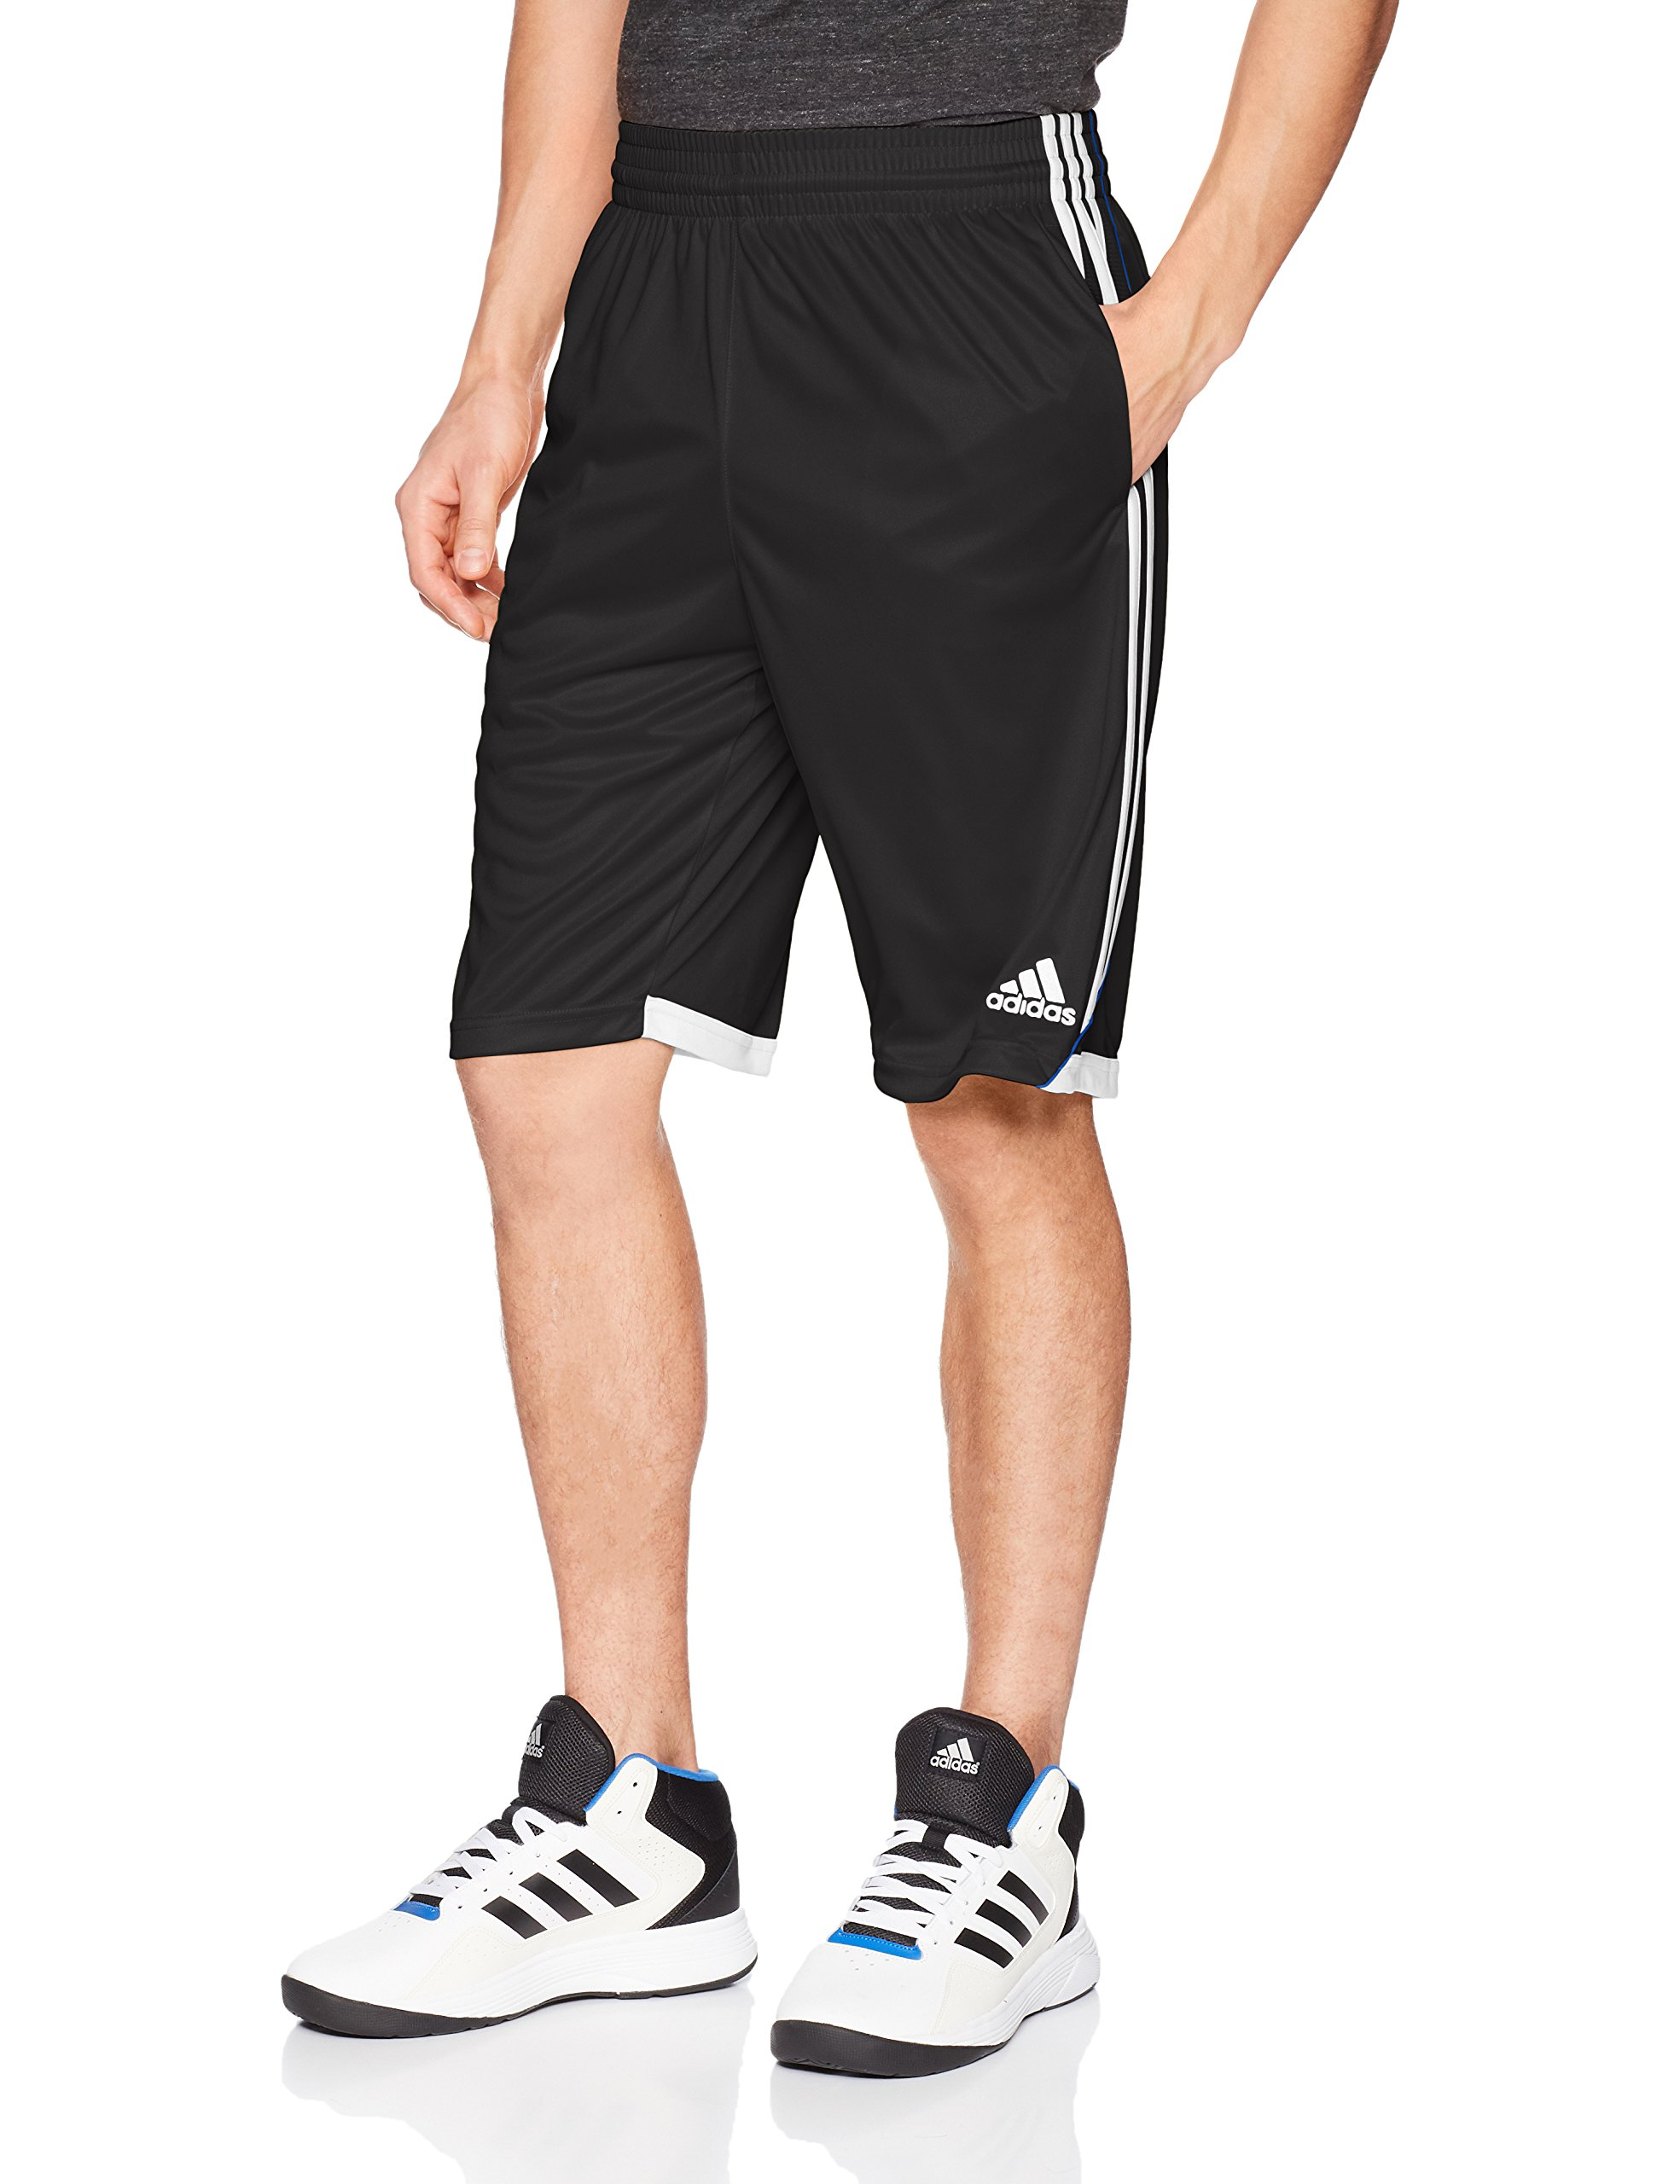 adidas Men's Basketball 3G Speed Shorts, Black, Small